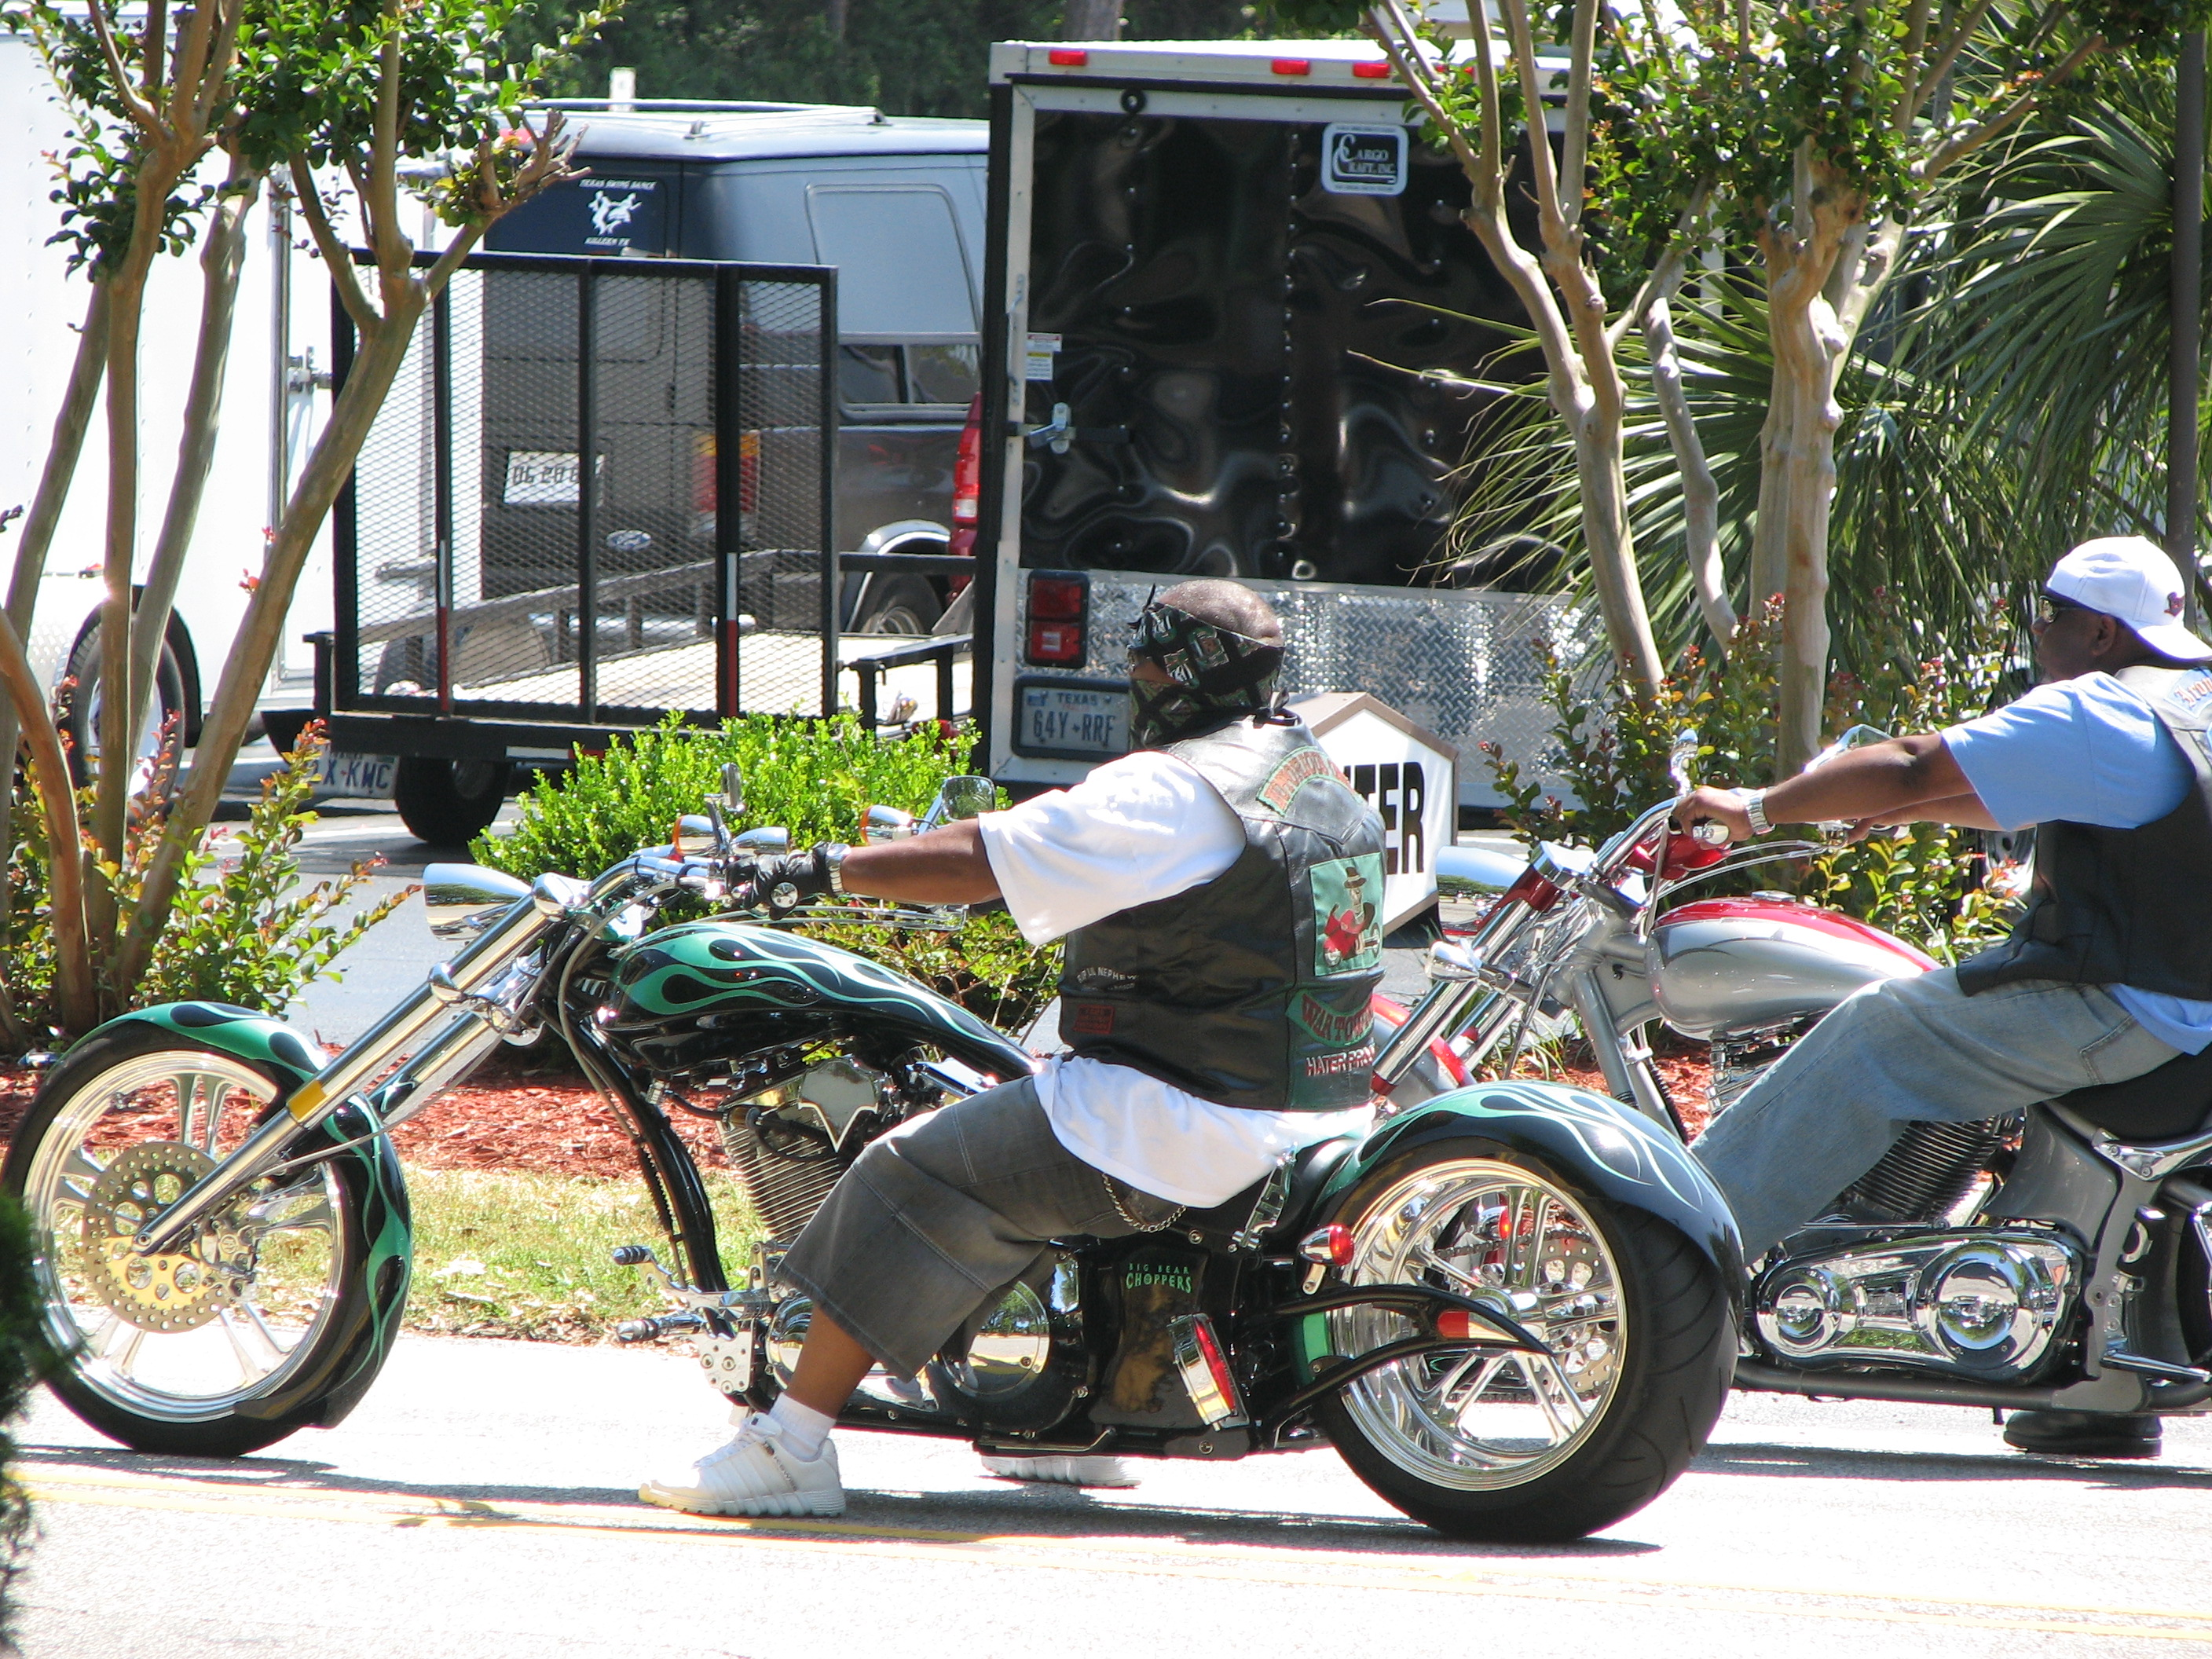 Description Choppers at Black Bike Myrtle Beach.jpg